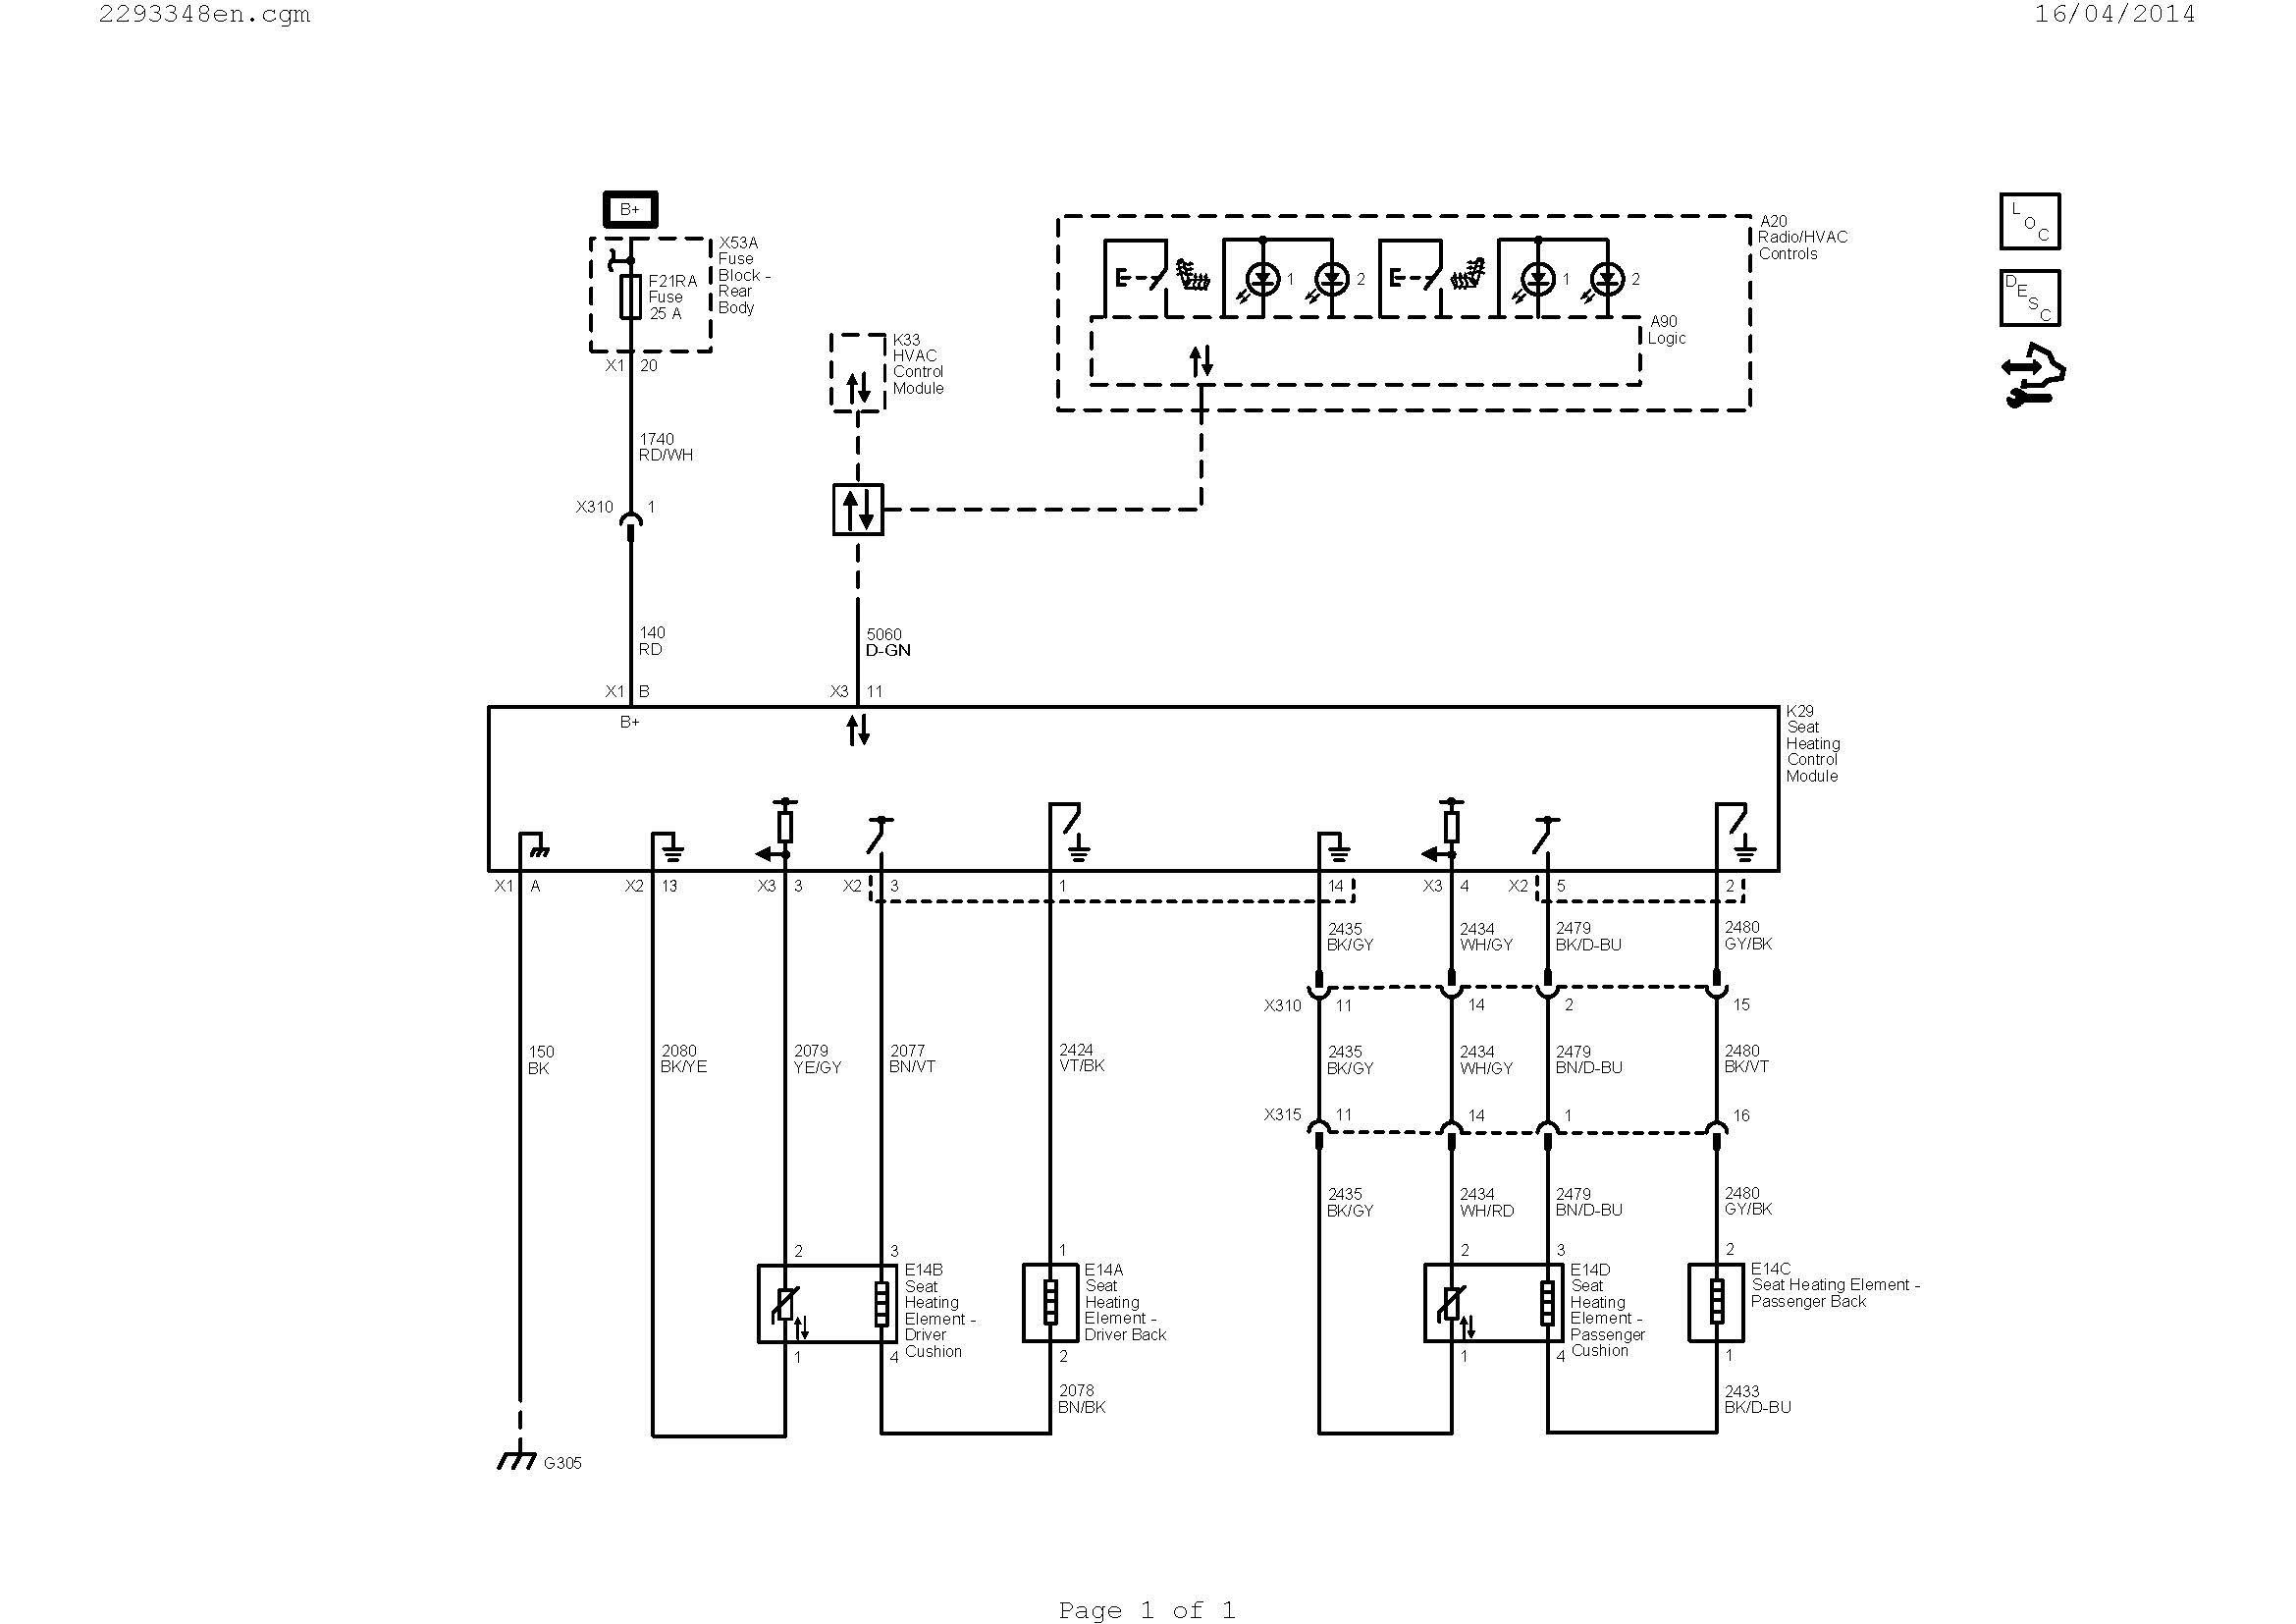 Ac Thermostat Wiring Diagram Collection Wiring Diagram Sample - Ac thermostat wiring diagram